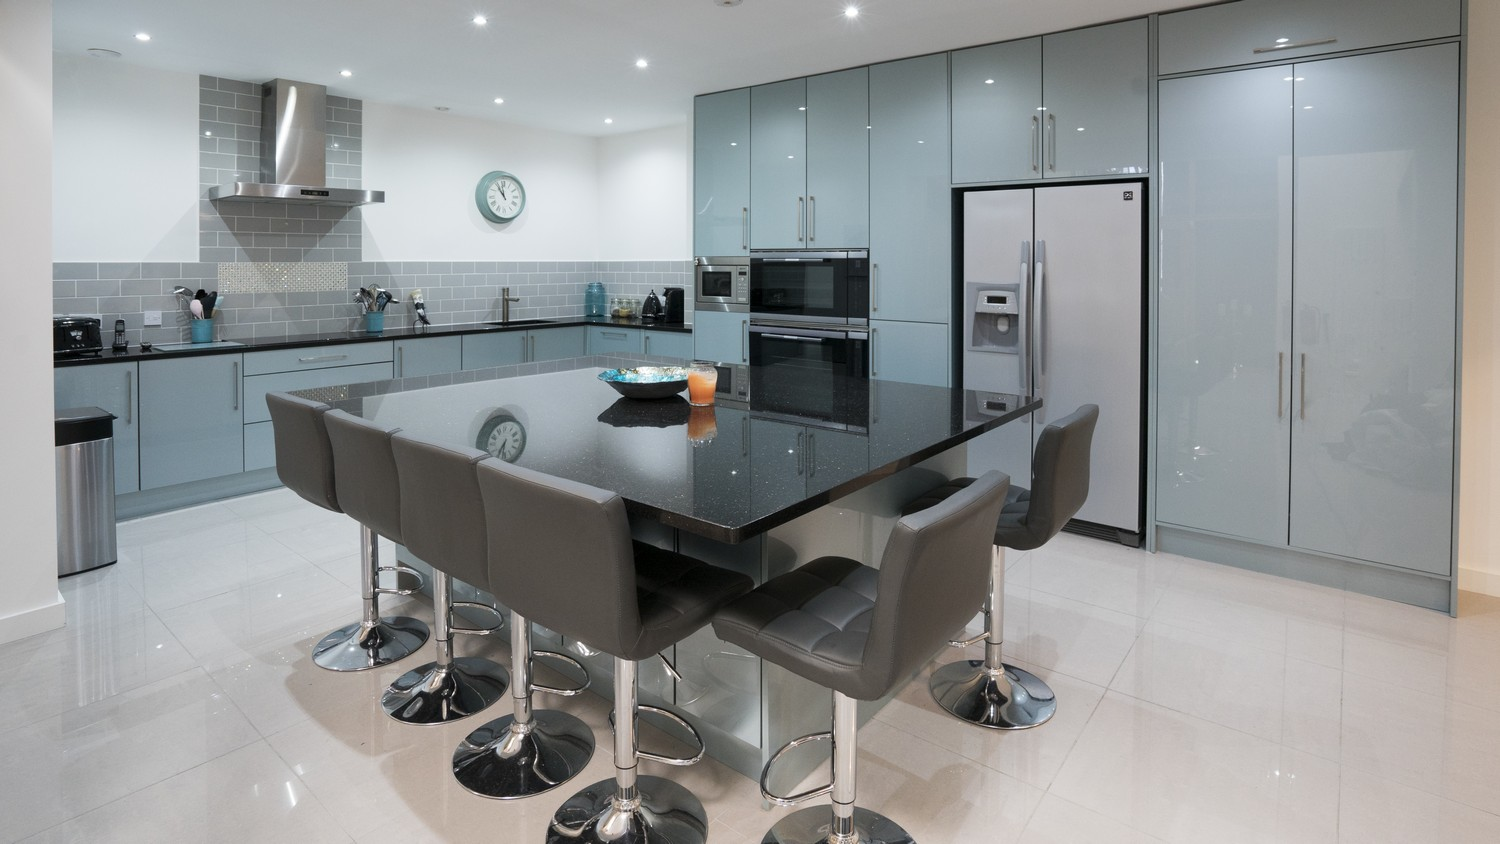 A large granite topped island with overhang and bar stools take center stage of this large high gloss kitchen.